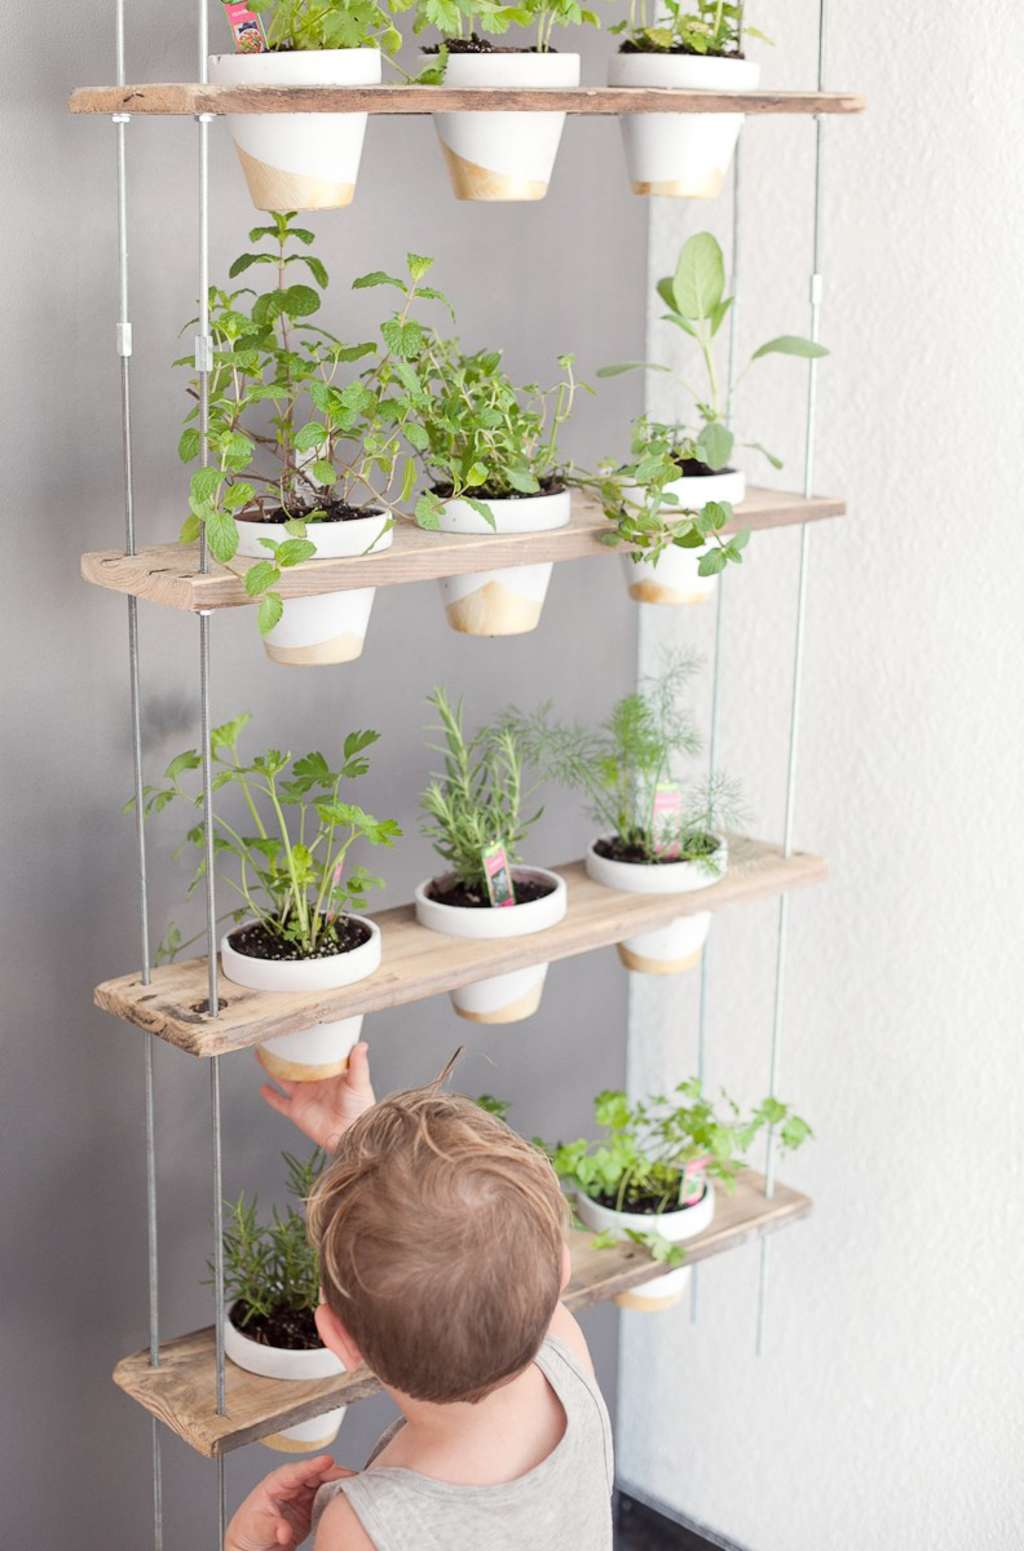 An Easy & Stylish DIY Herb Wall for Your Kitchen